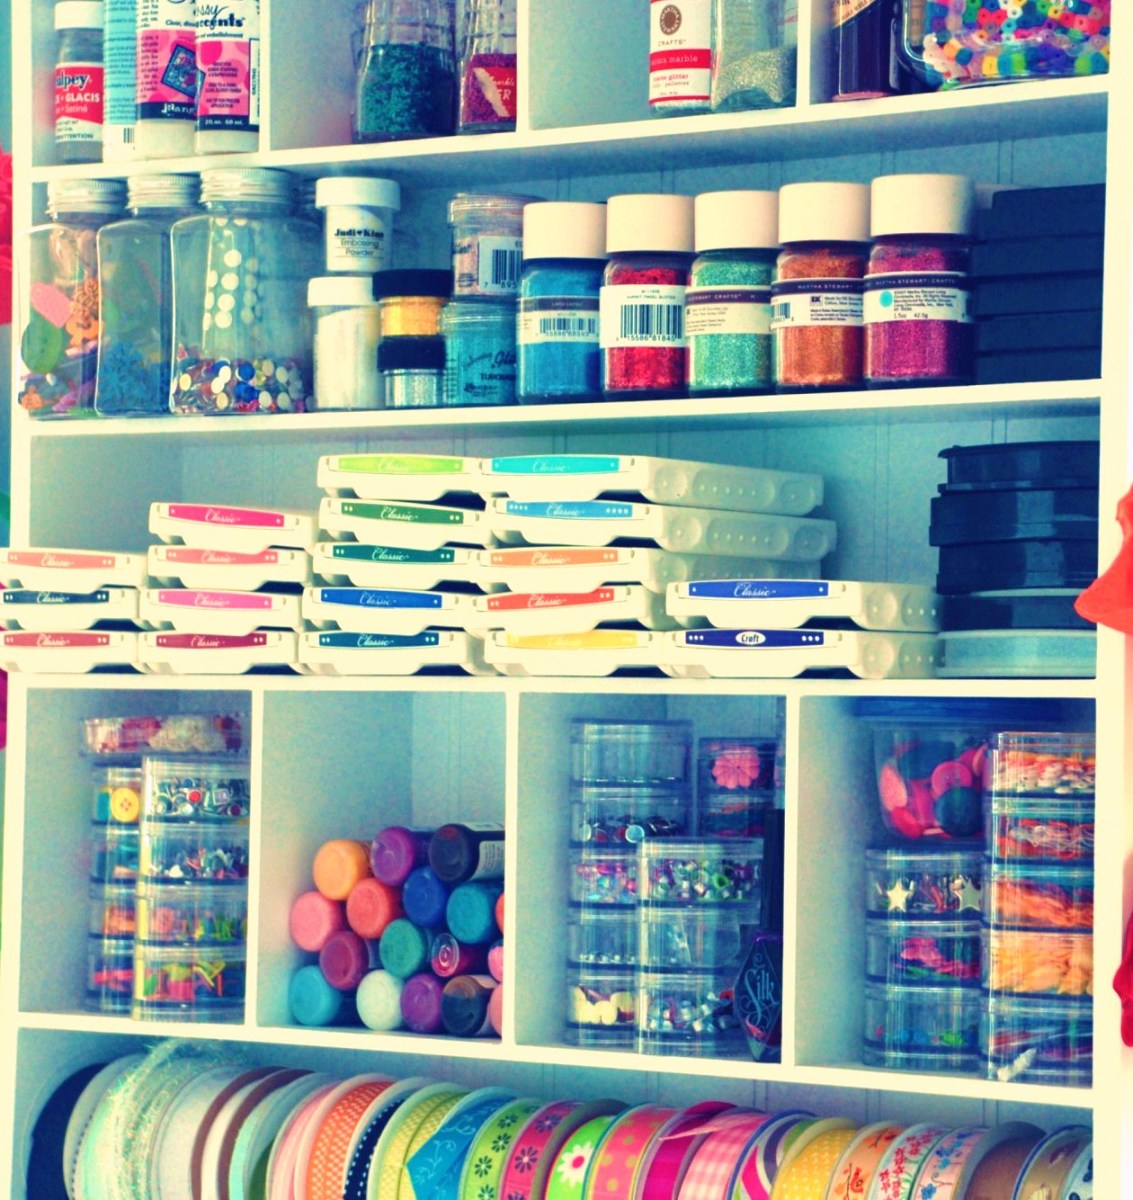 Organizing your items with like items makes the room better, and makes the items easier to find.